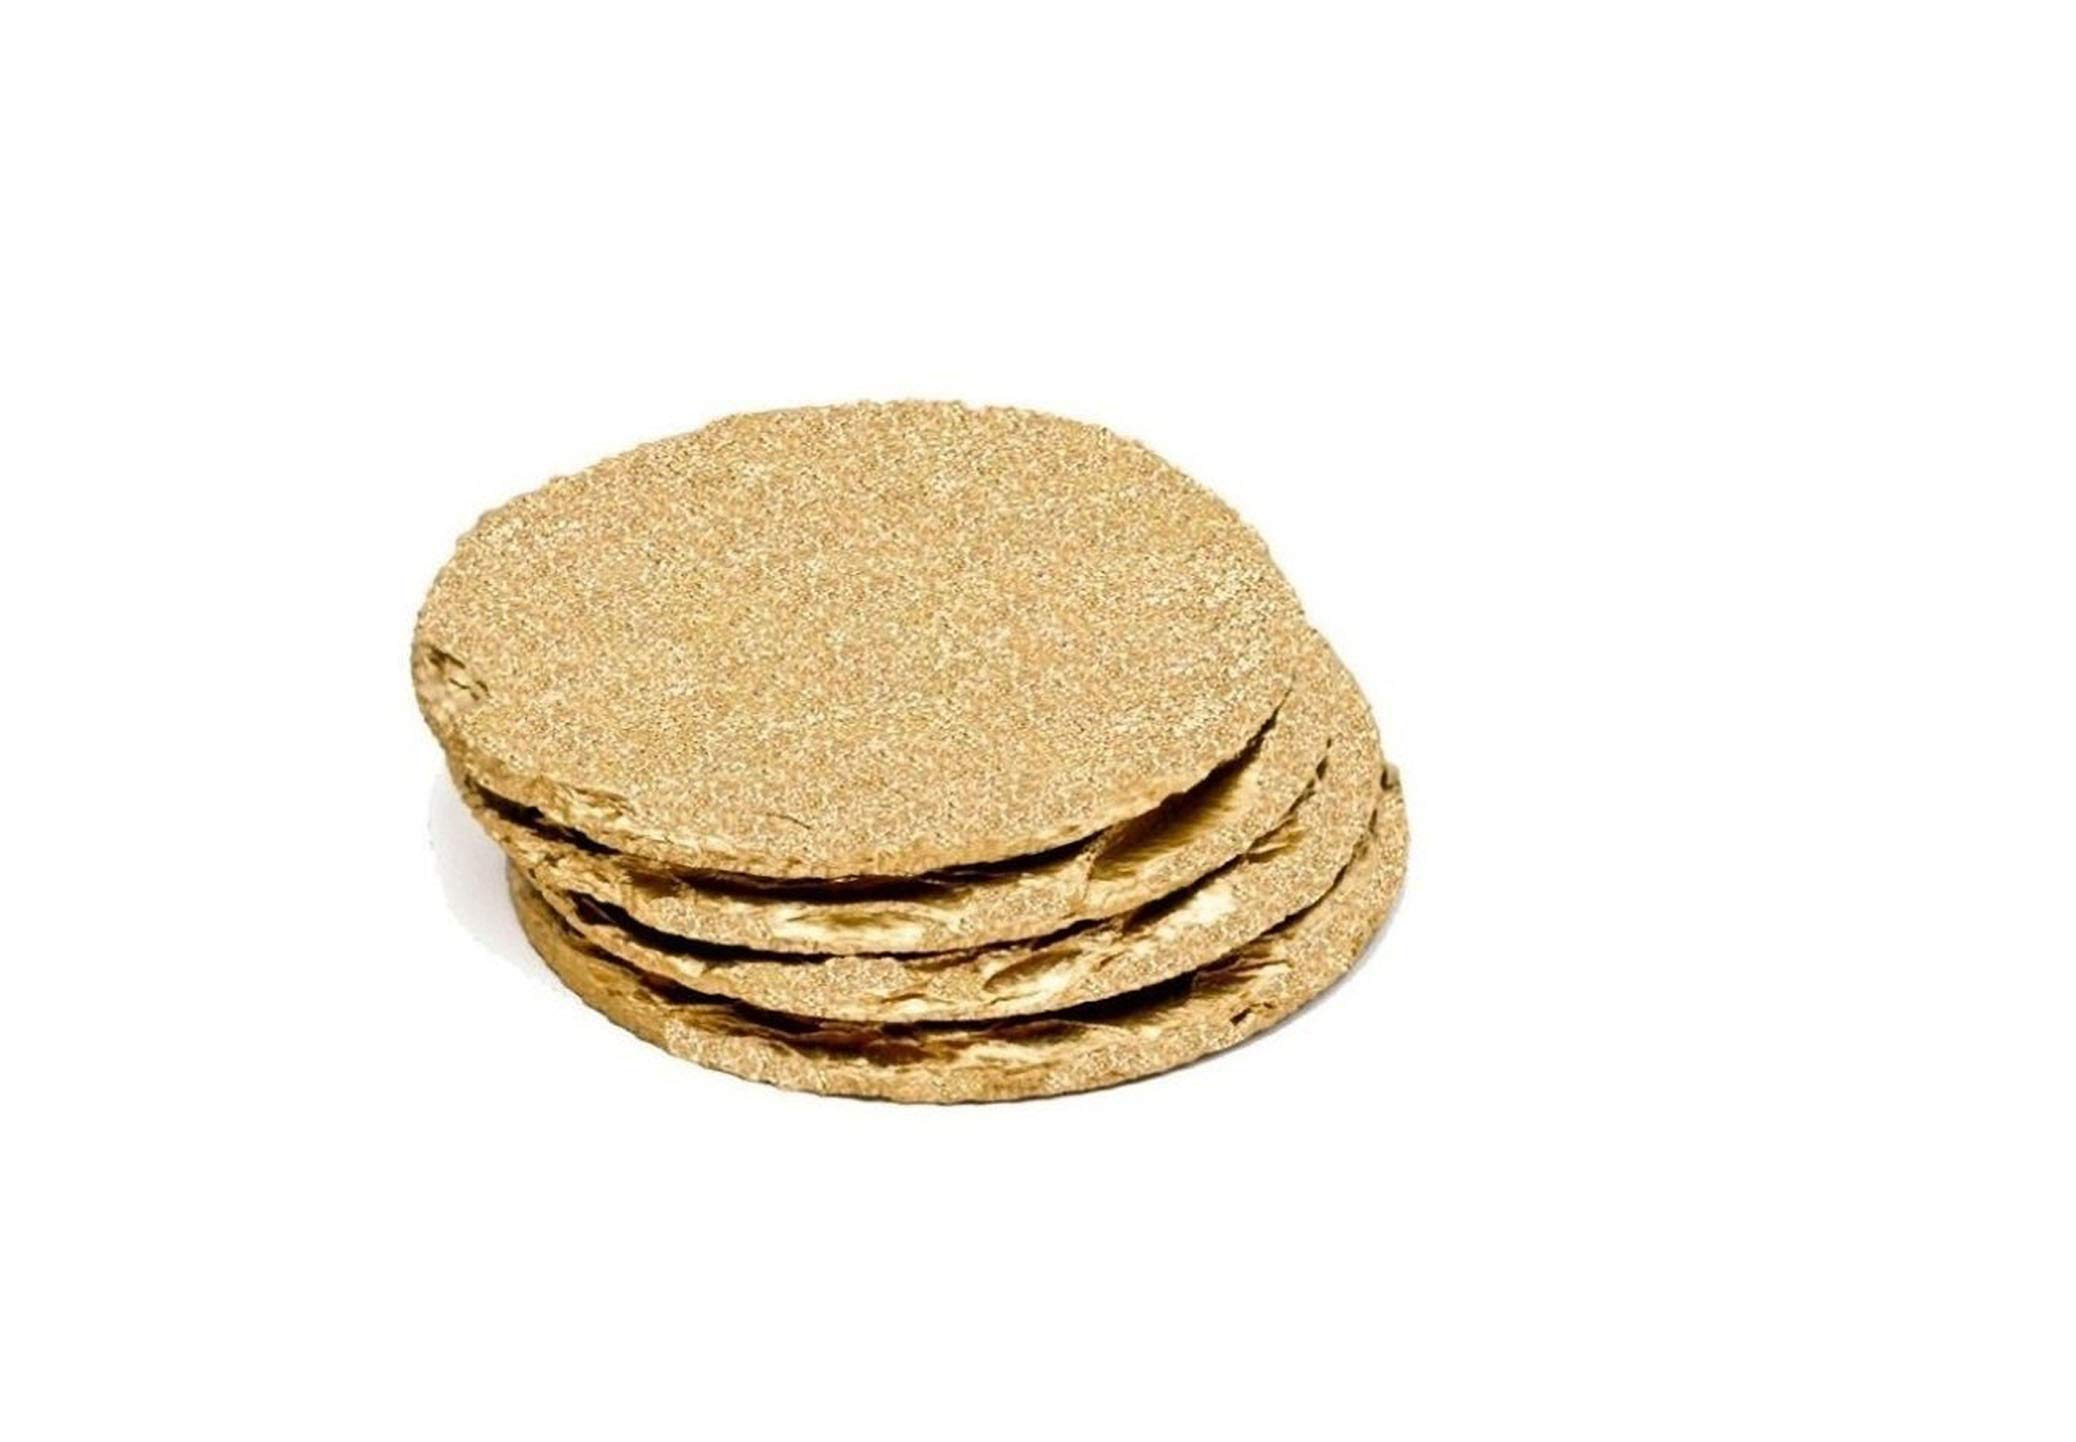 Renee Redesigns Handmade Gold Slate Glitter Coasters For Drinks | Protect Your Table Tops From Drink Rings and Spills | Unique 4-Piece Holiday Glitz Gift Set, Round - 4 x 4 inches